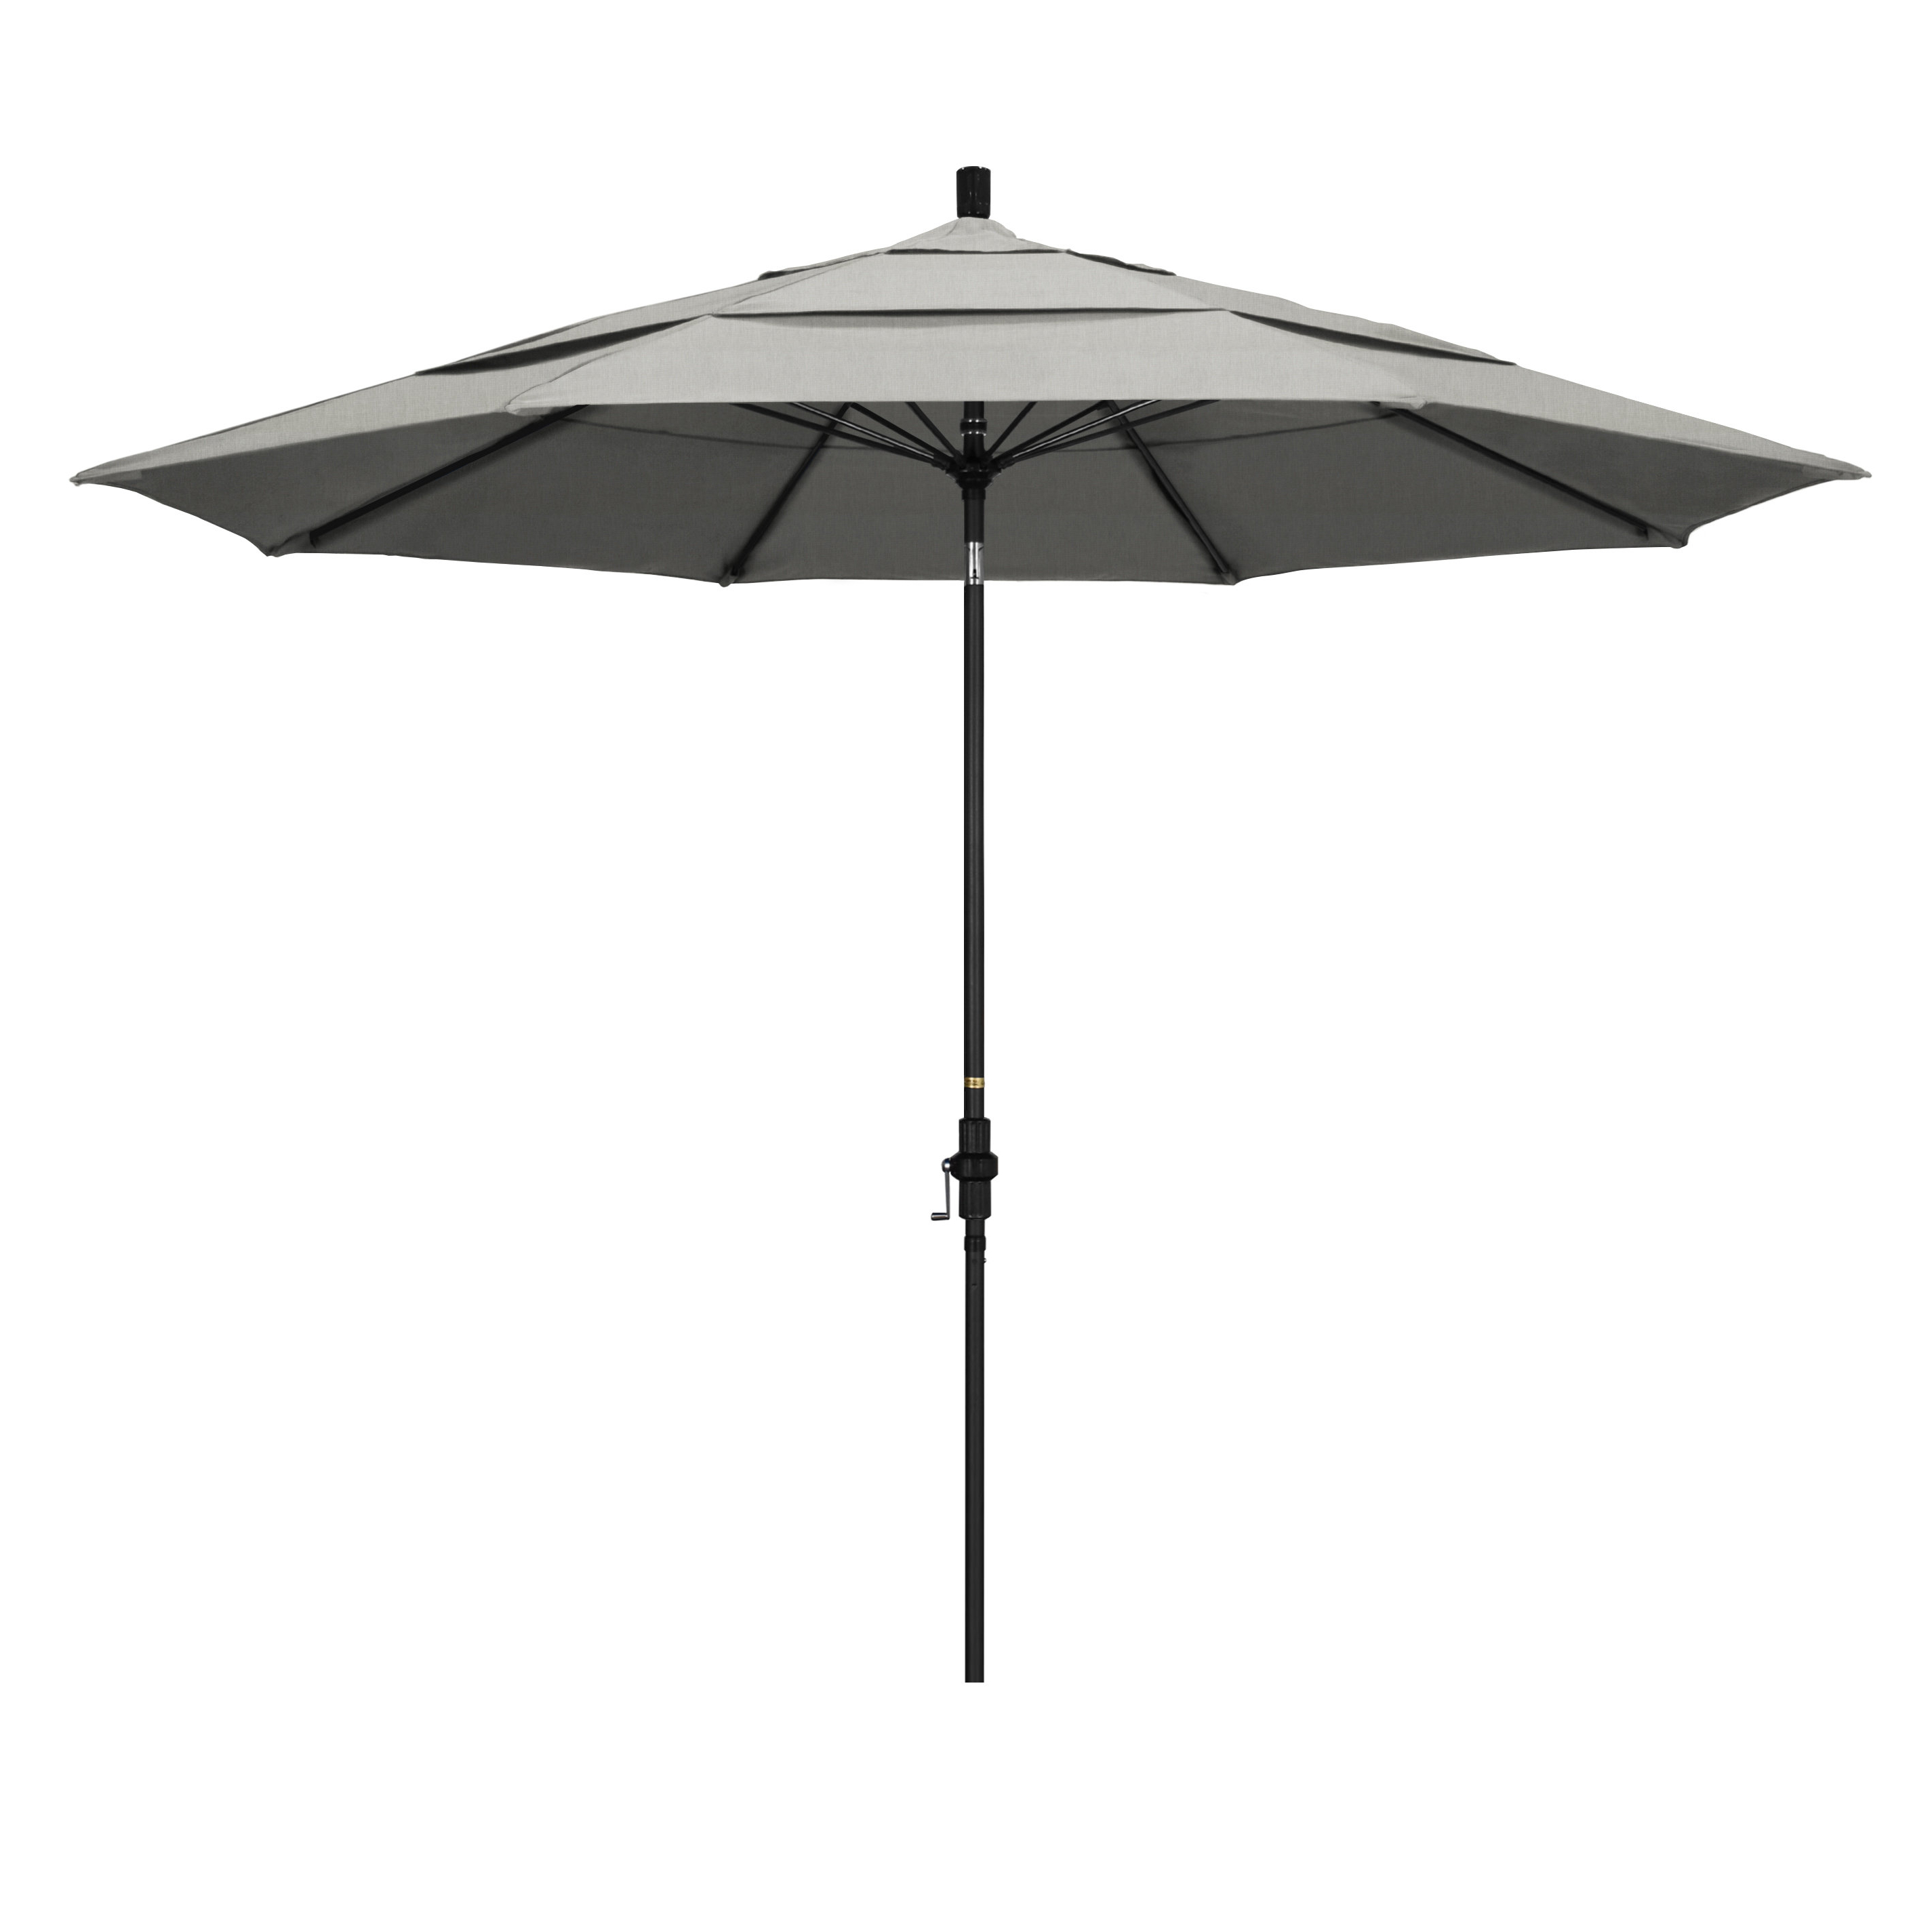 Hookton Crank Market Umbrellas Throughout Current Keegan 11' Market Umbrella & Reviews (View 10 of 20)